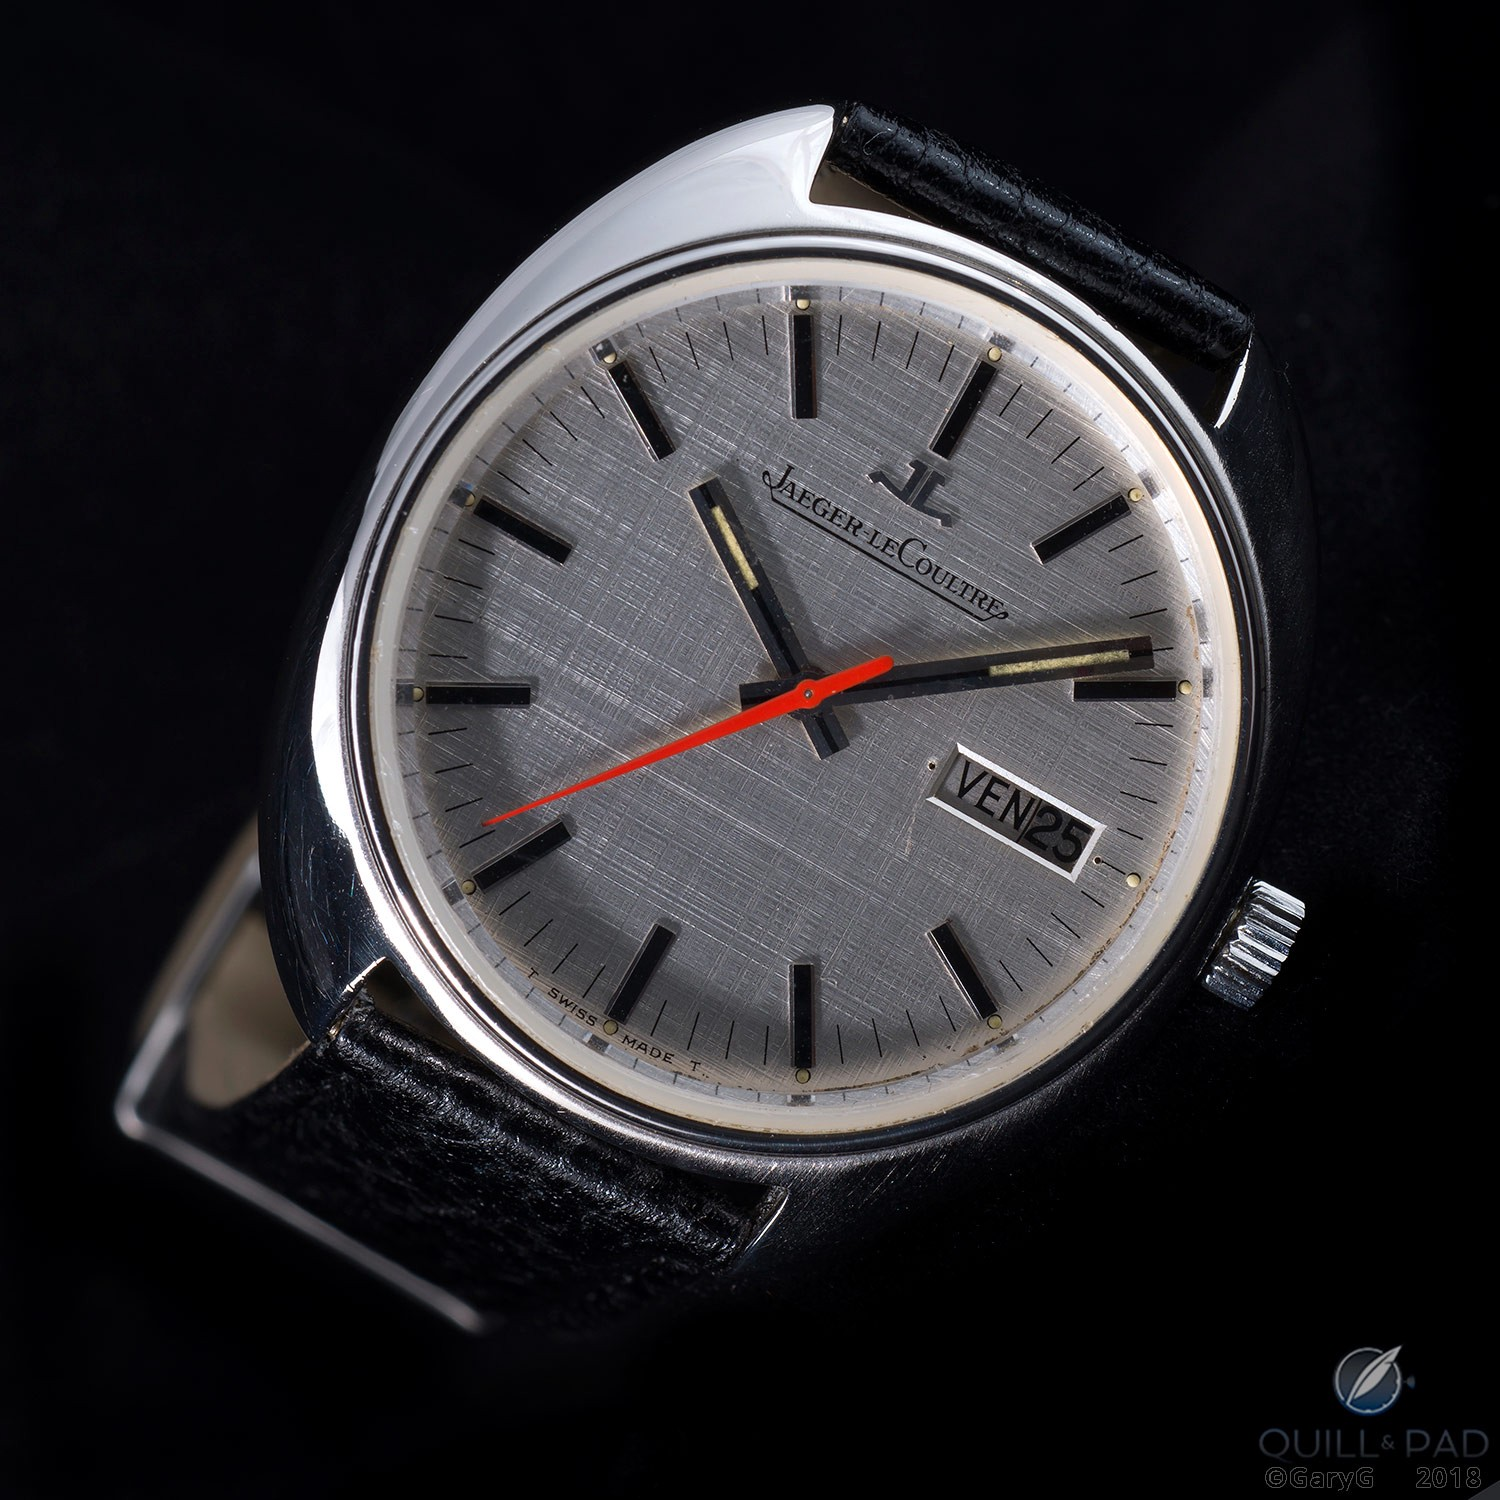 Sweeping statement: Jaeger-LeCoultre prototype watch with bright sweep seconds hand